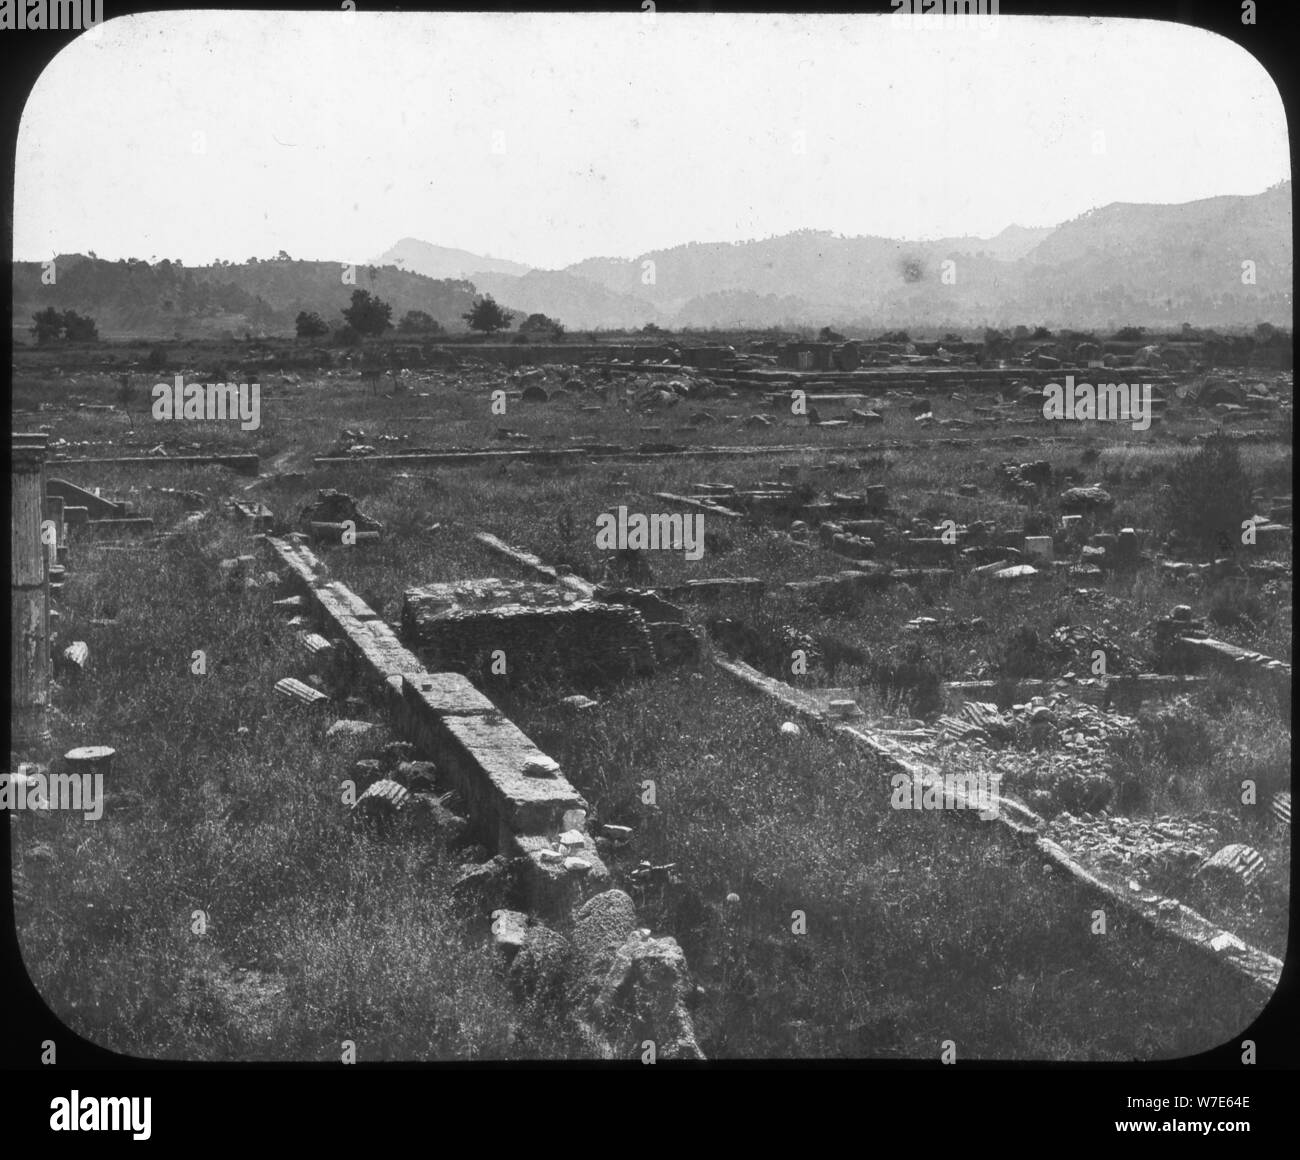 Olympia, Greece, late 19th or early 20th century. Artist: Unknown Stock Photo